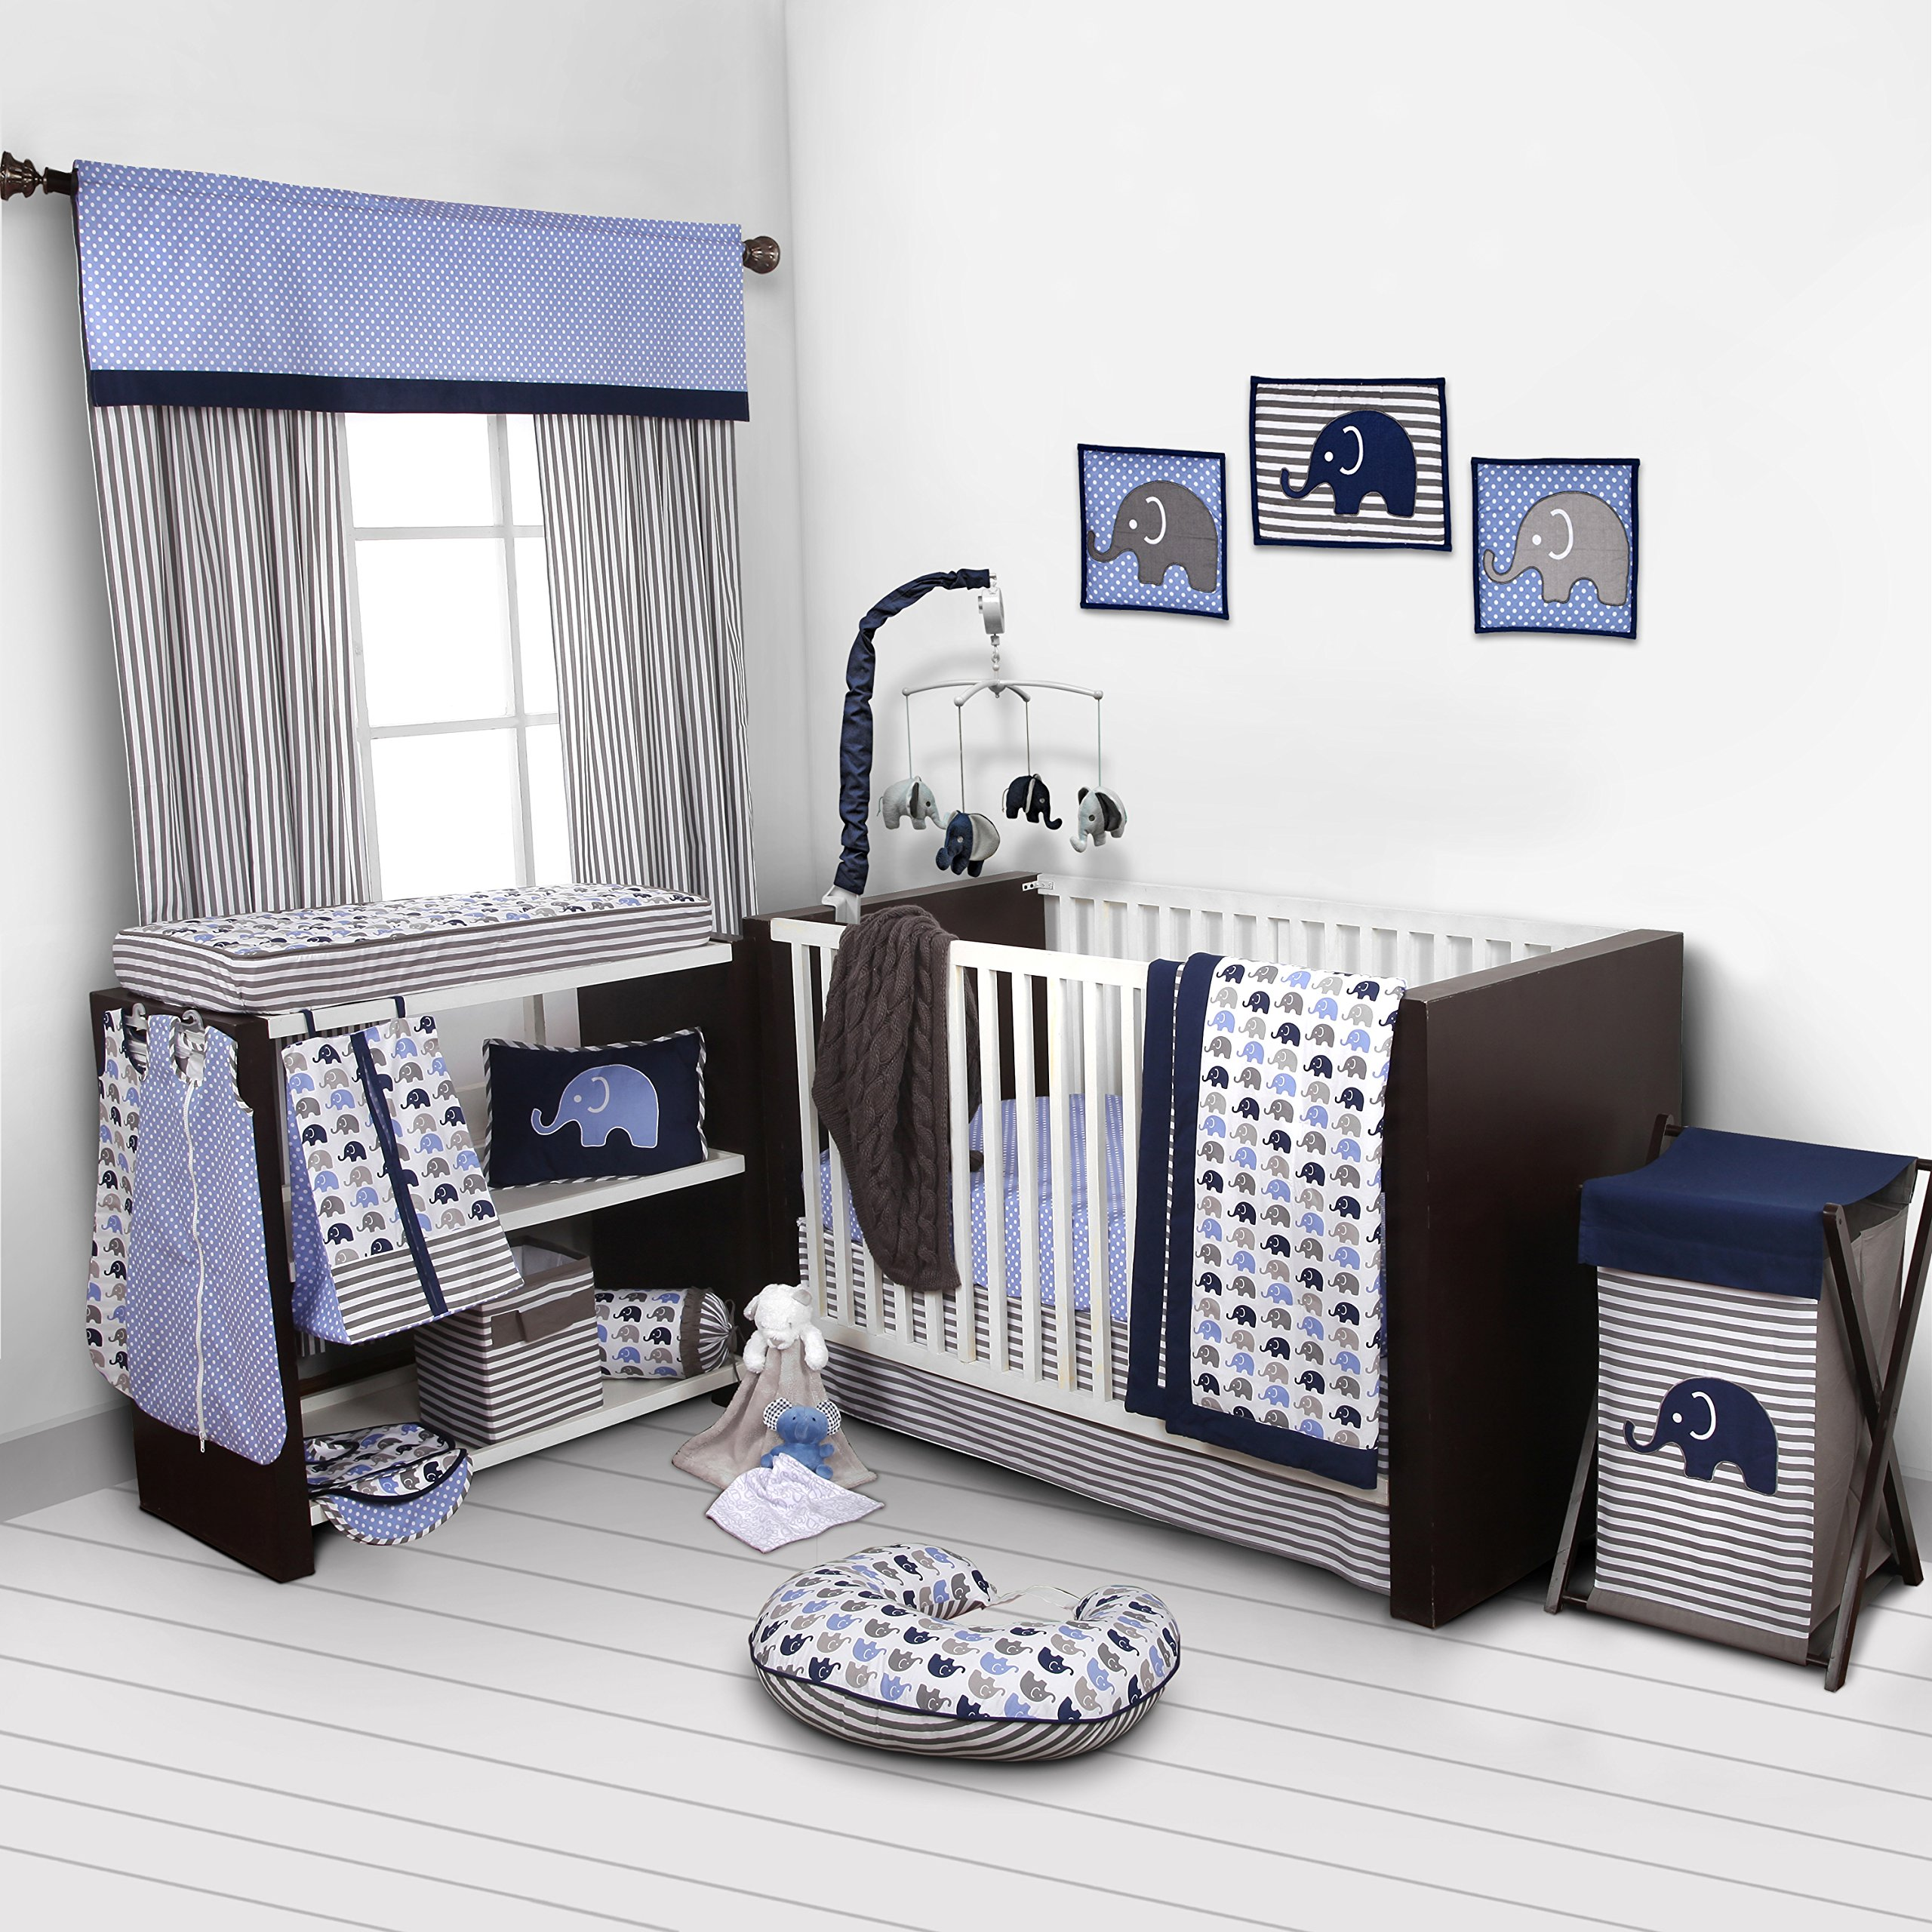 Elephants Blue/Grey 10 pc Crib Set Bumperfree